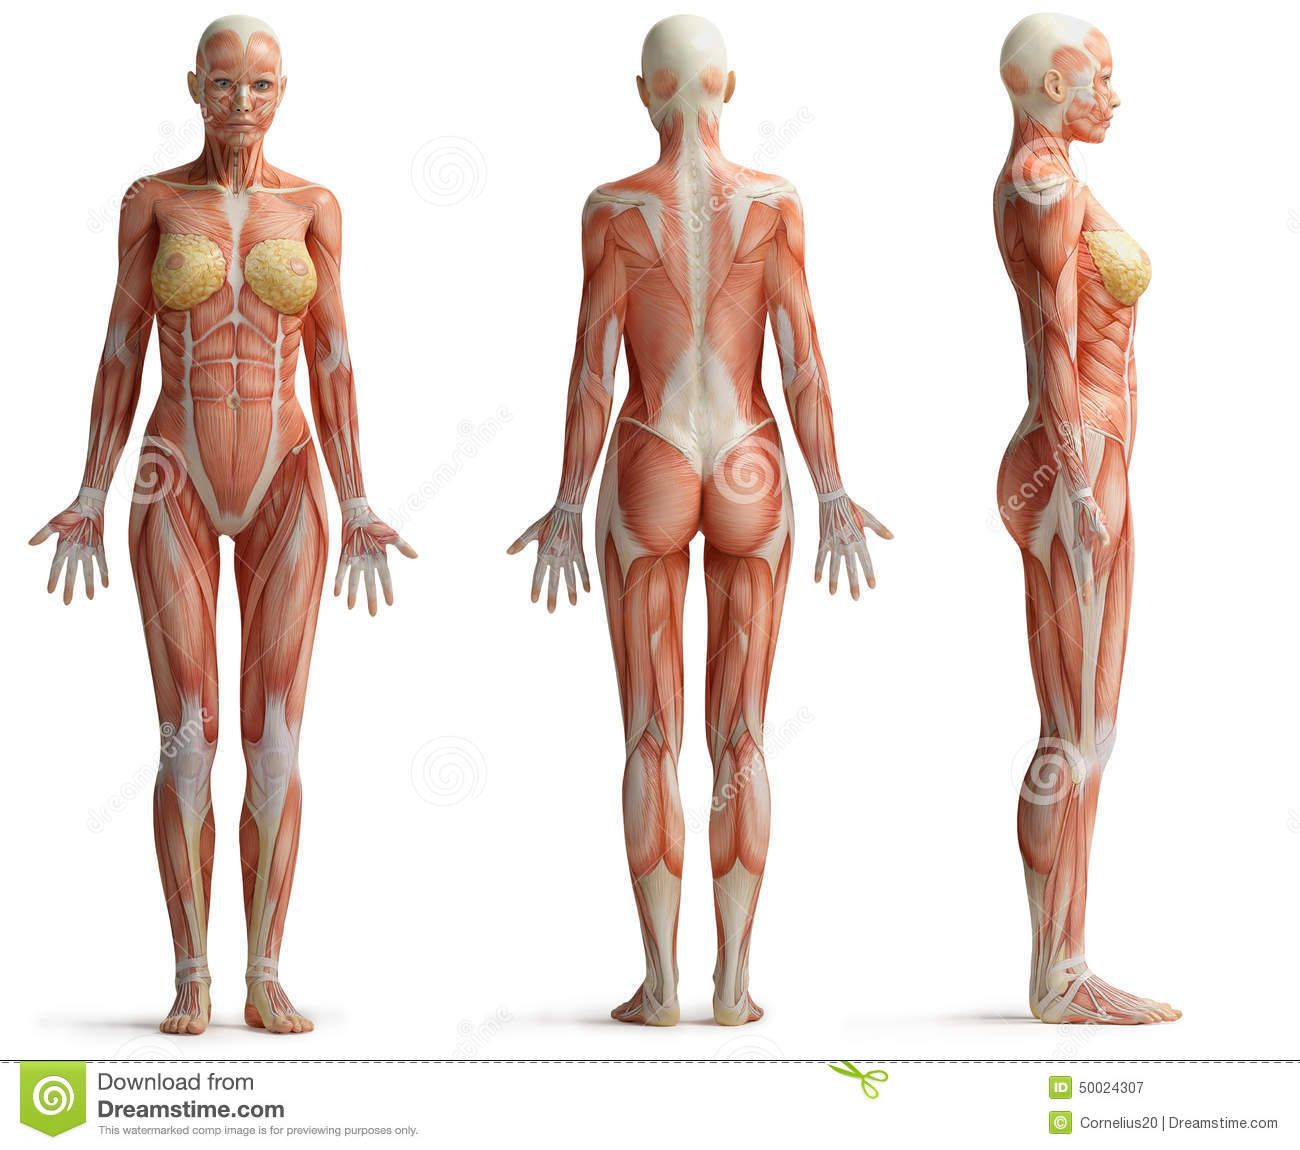 Female Anatomy - Download From Over 41 Million High Quality Stock ...